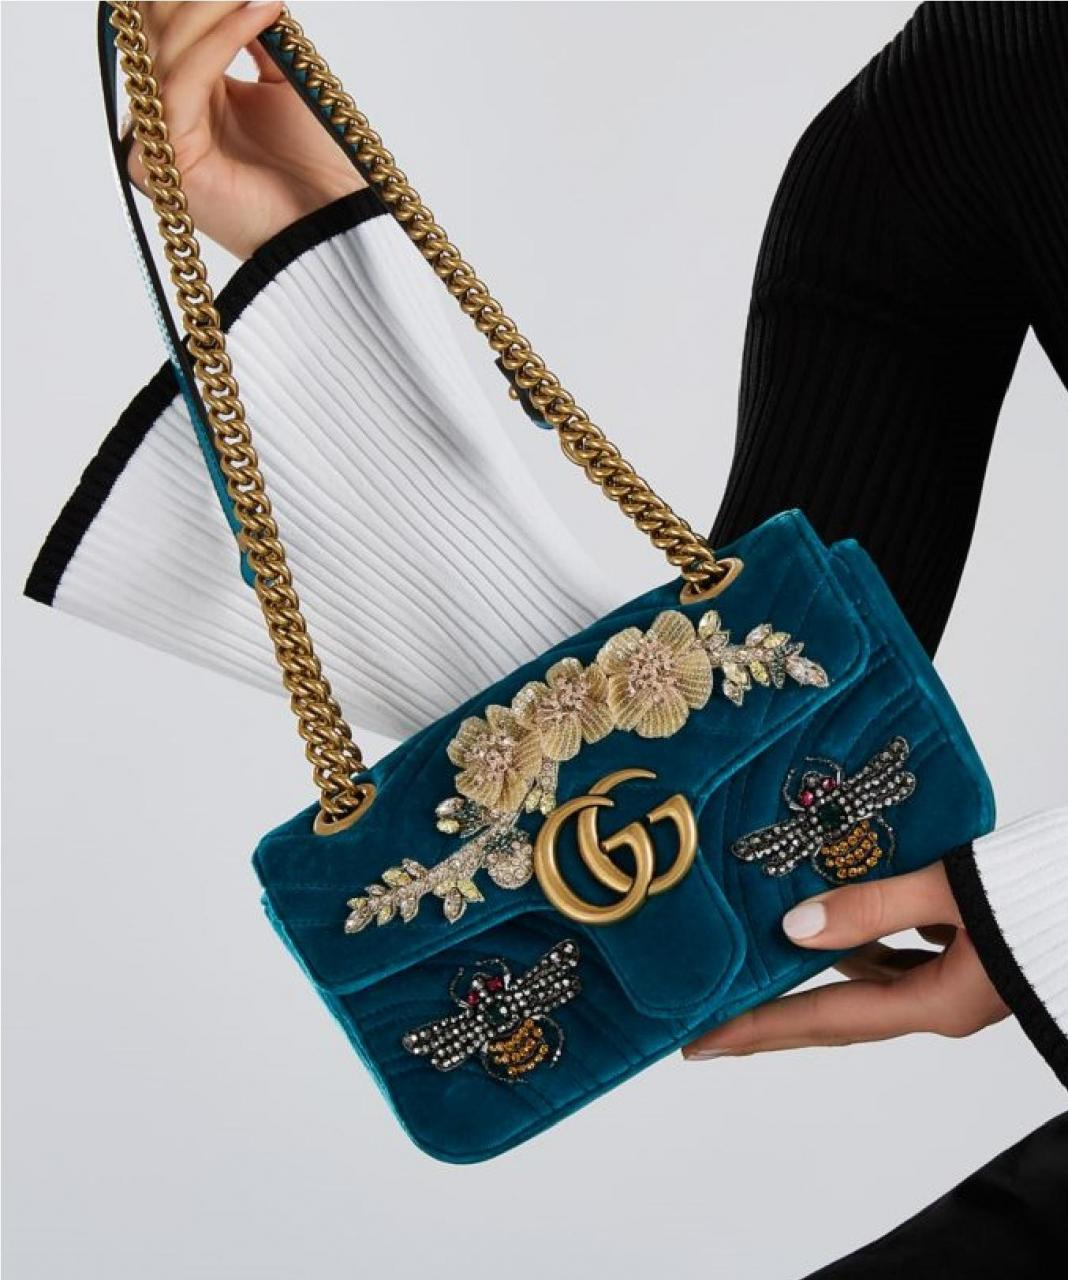 fbcc9970bb2 Gucci Marmont New Gg Mini Embroidered Velvet Shoulder Bag Replica Handbag  Suppliers